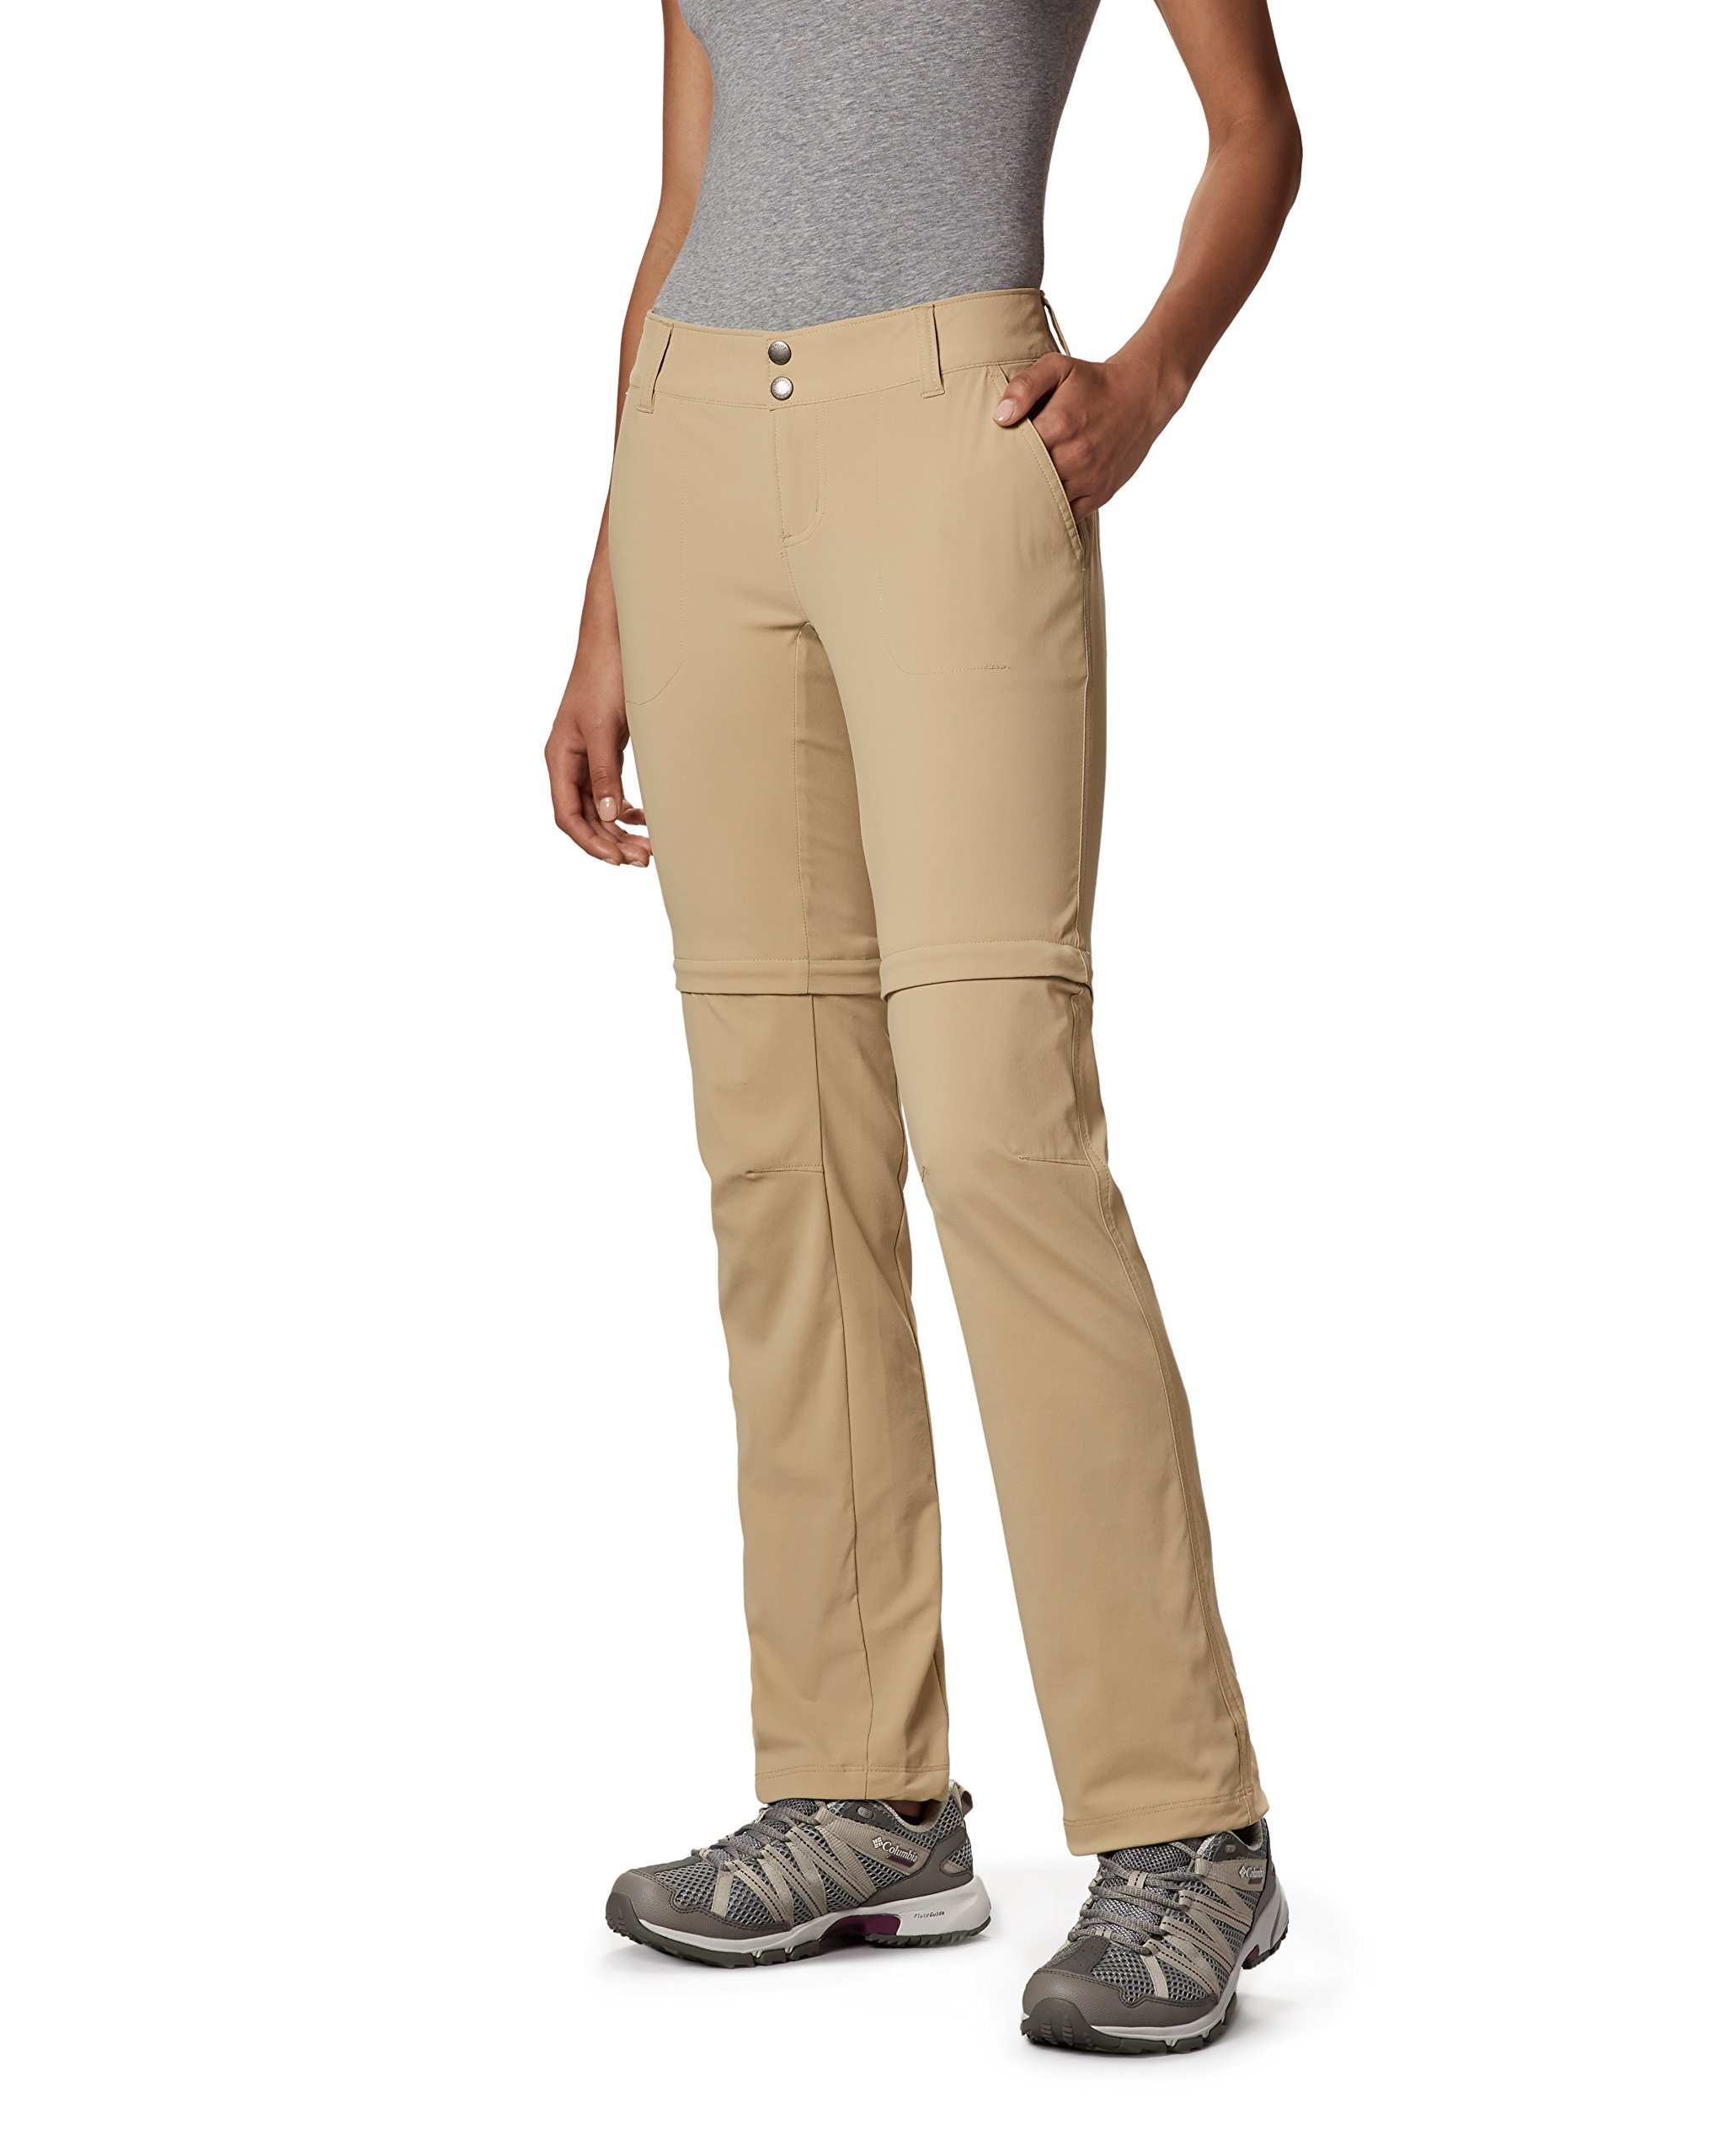 Columbia Women's Saturday Trail II Convertible Pants, 14 Shorts, British Tan